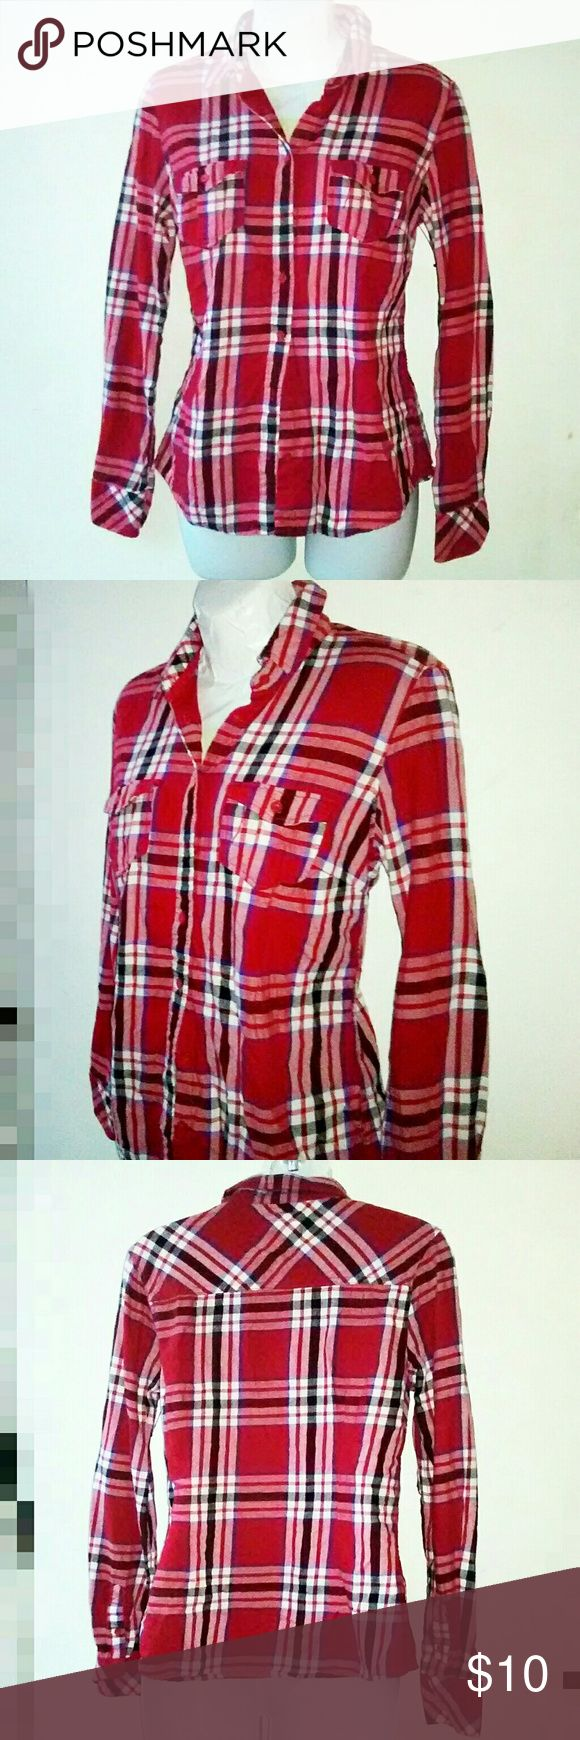 Aeropostale Red Plaid Shirt Red plaid button down shirt 100% cotton 2 breast pockets Excellent brand new condition 66 Aeropostale Tops Button Down Shirts